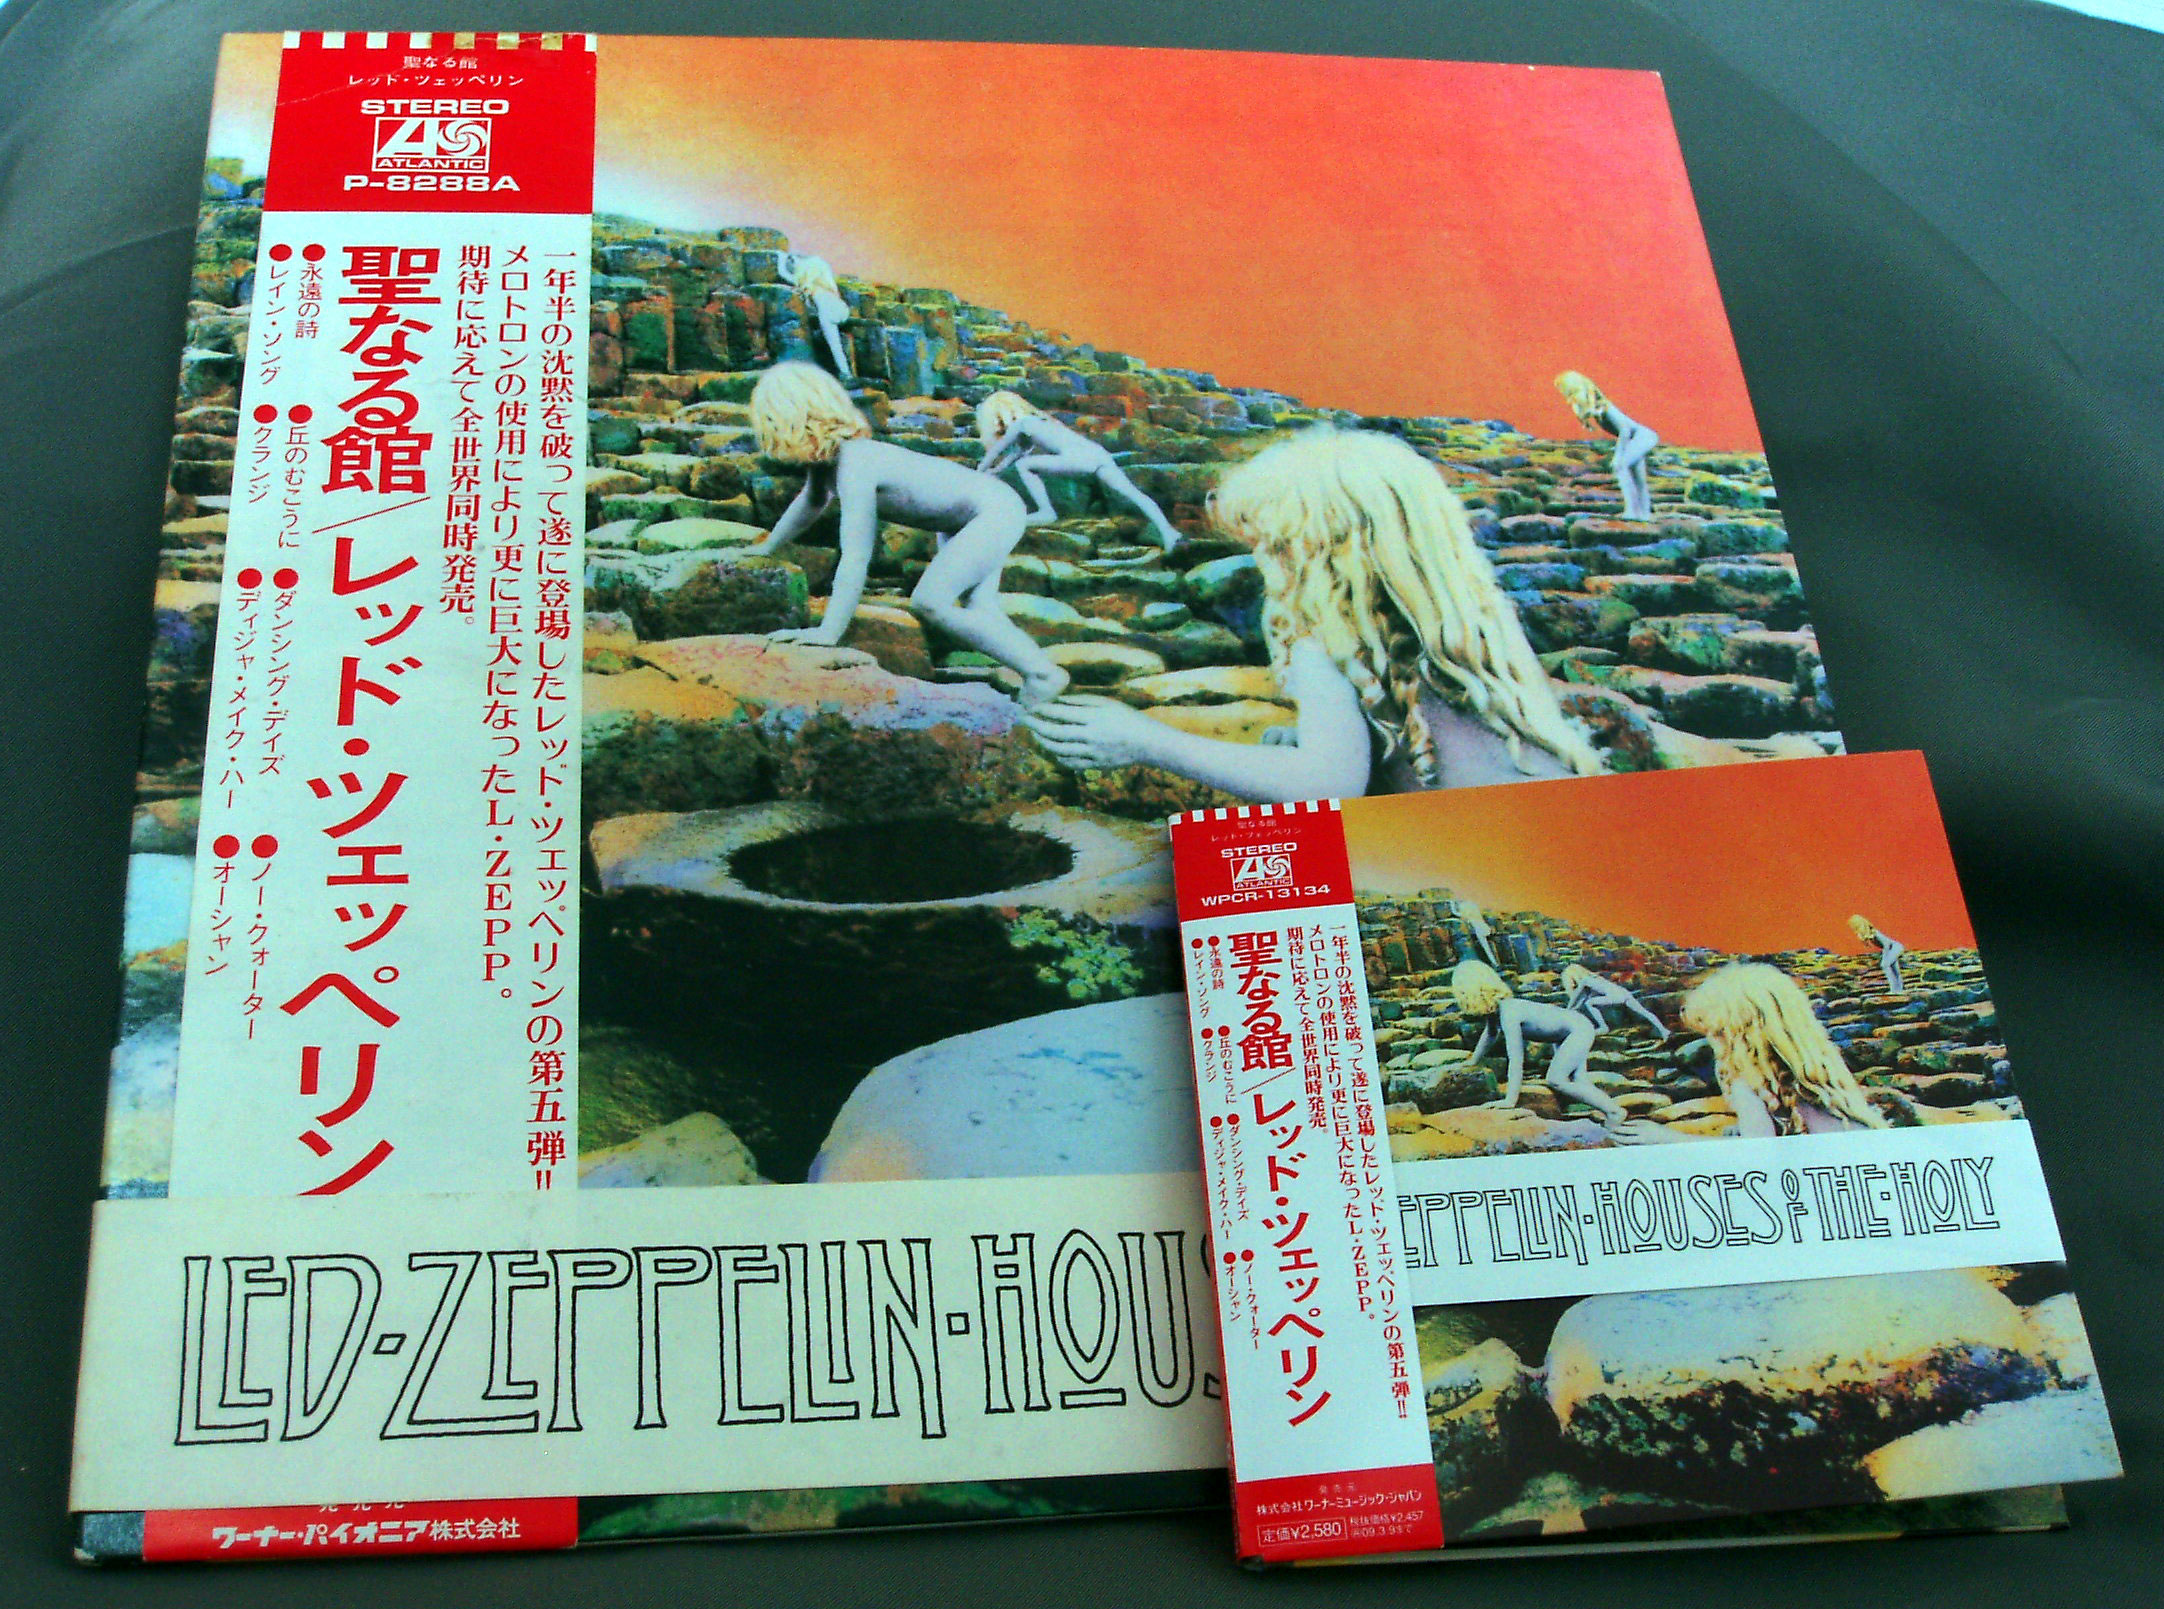 Led Zeppelin SHM-CDボックス 続...